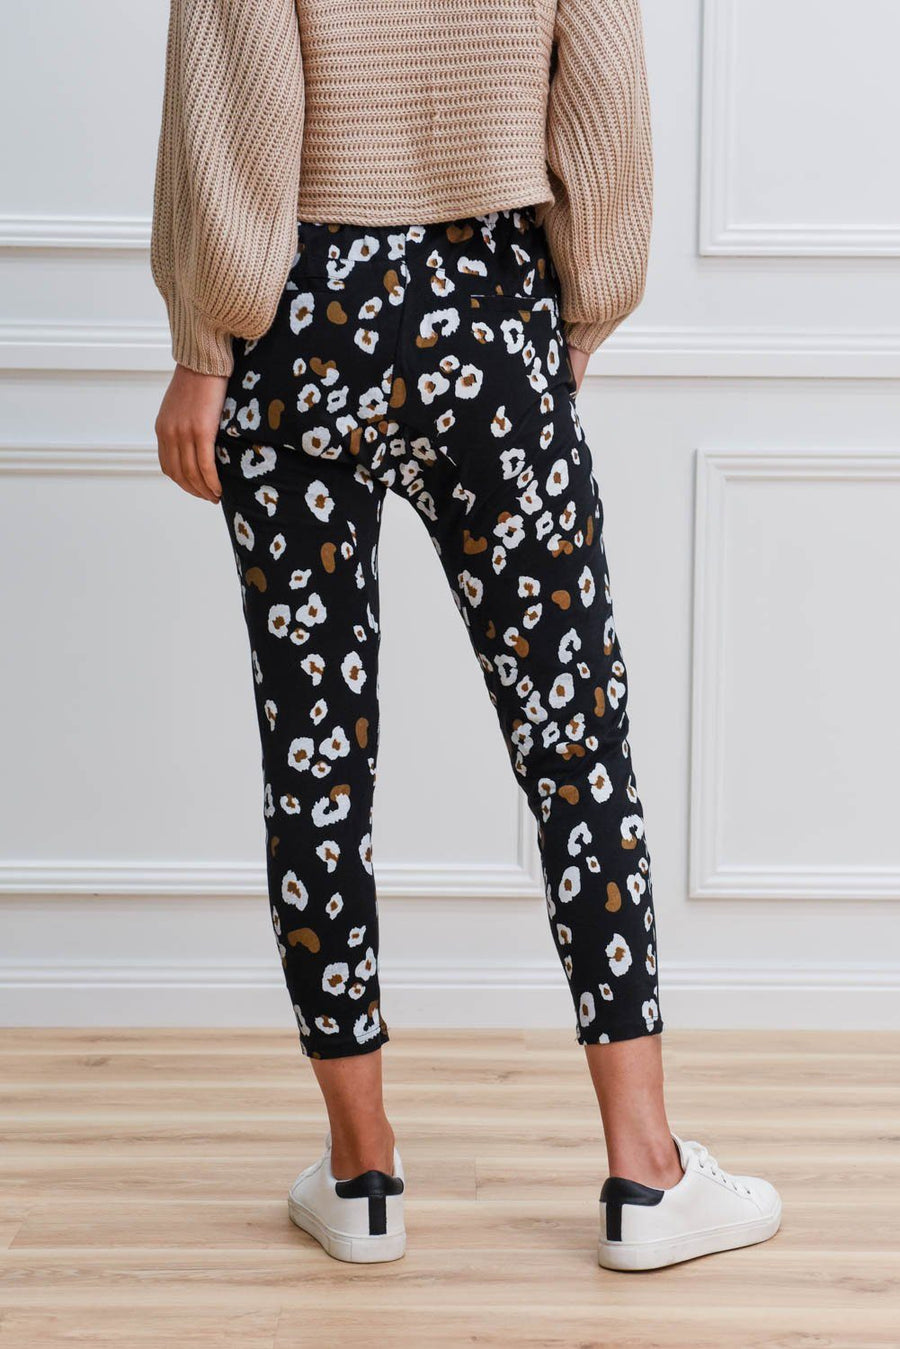 Lola Joggers | Dark Leopard Pants Gray Label